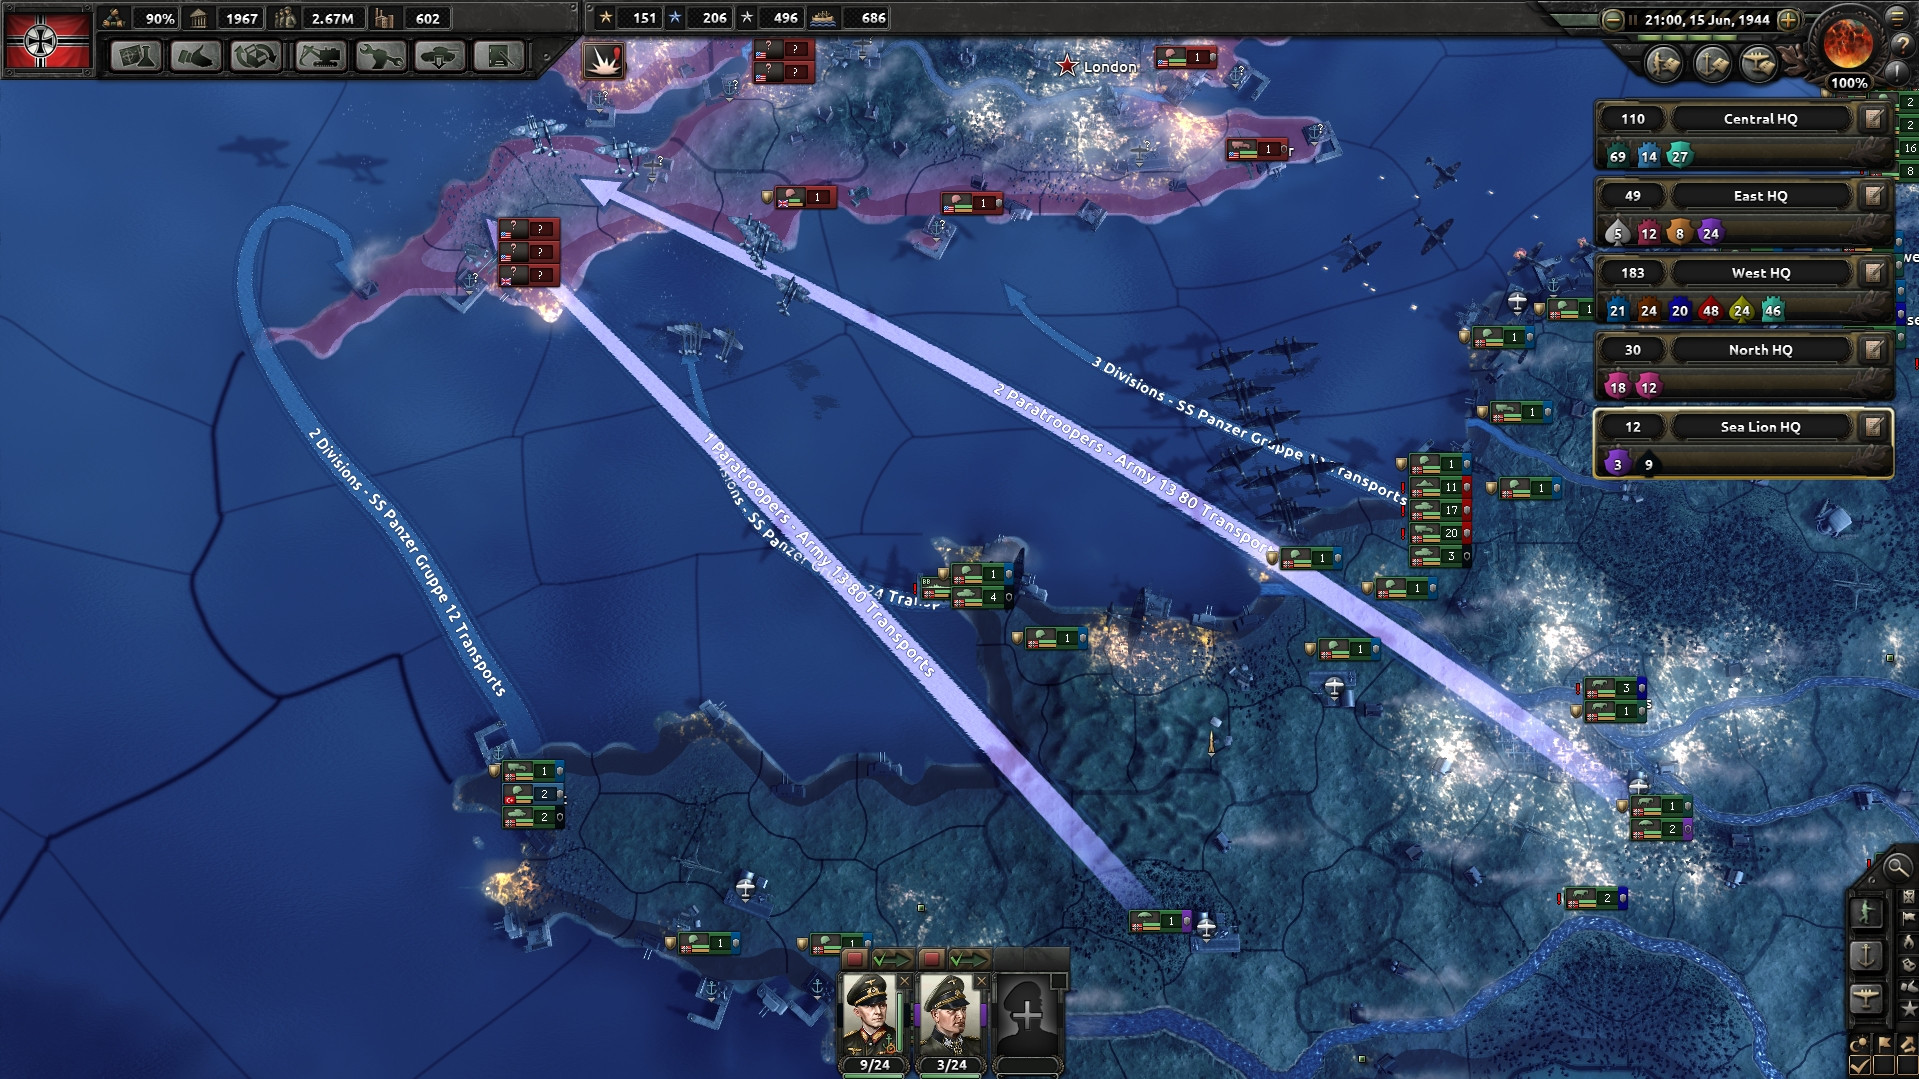 hearts of iron 4 how to stay non alinged